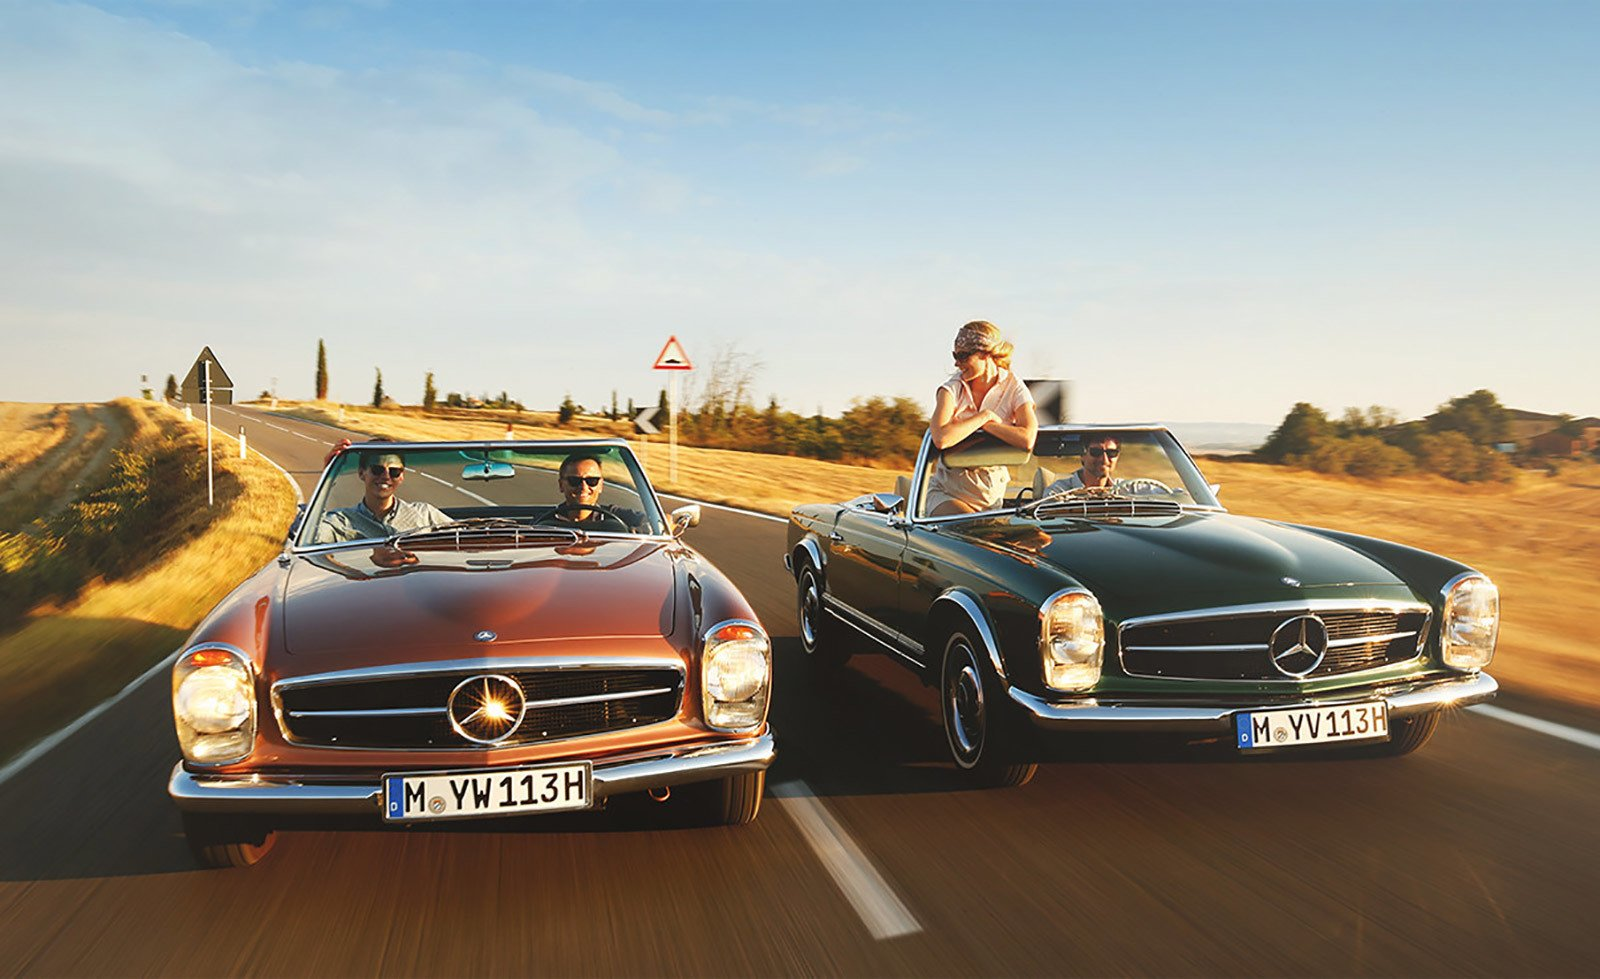 Photo 1 of 6 in Mercedes-Benz Classic Car Travel